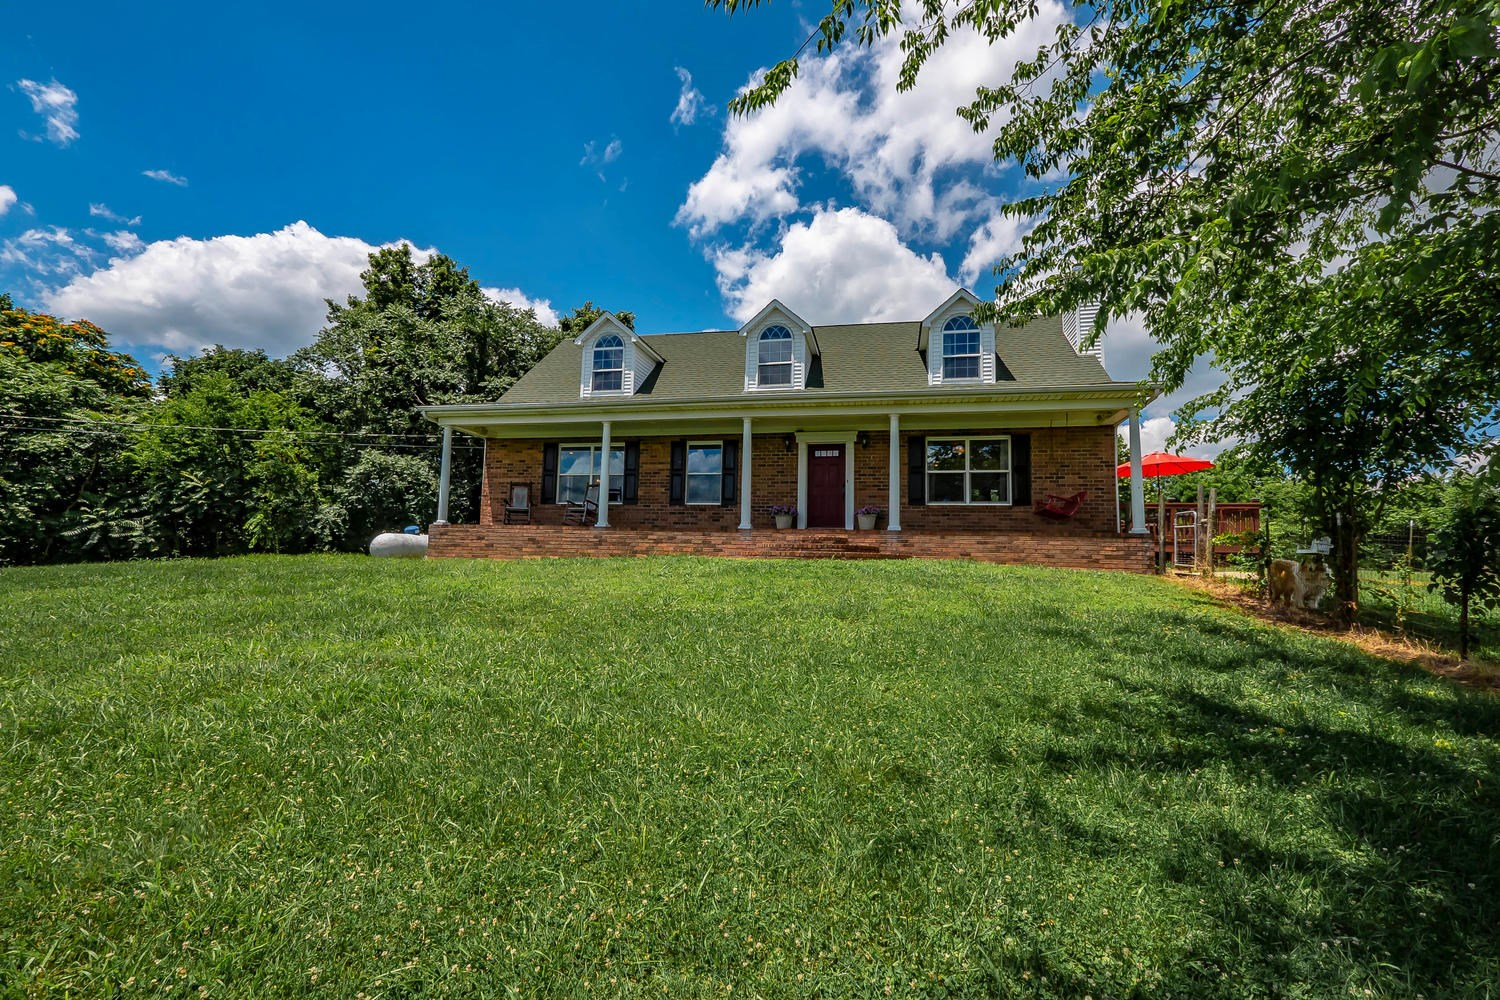 Home For Sale in Thompson's Station